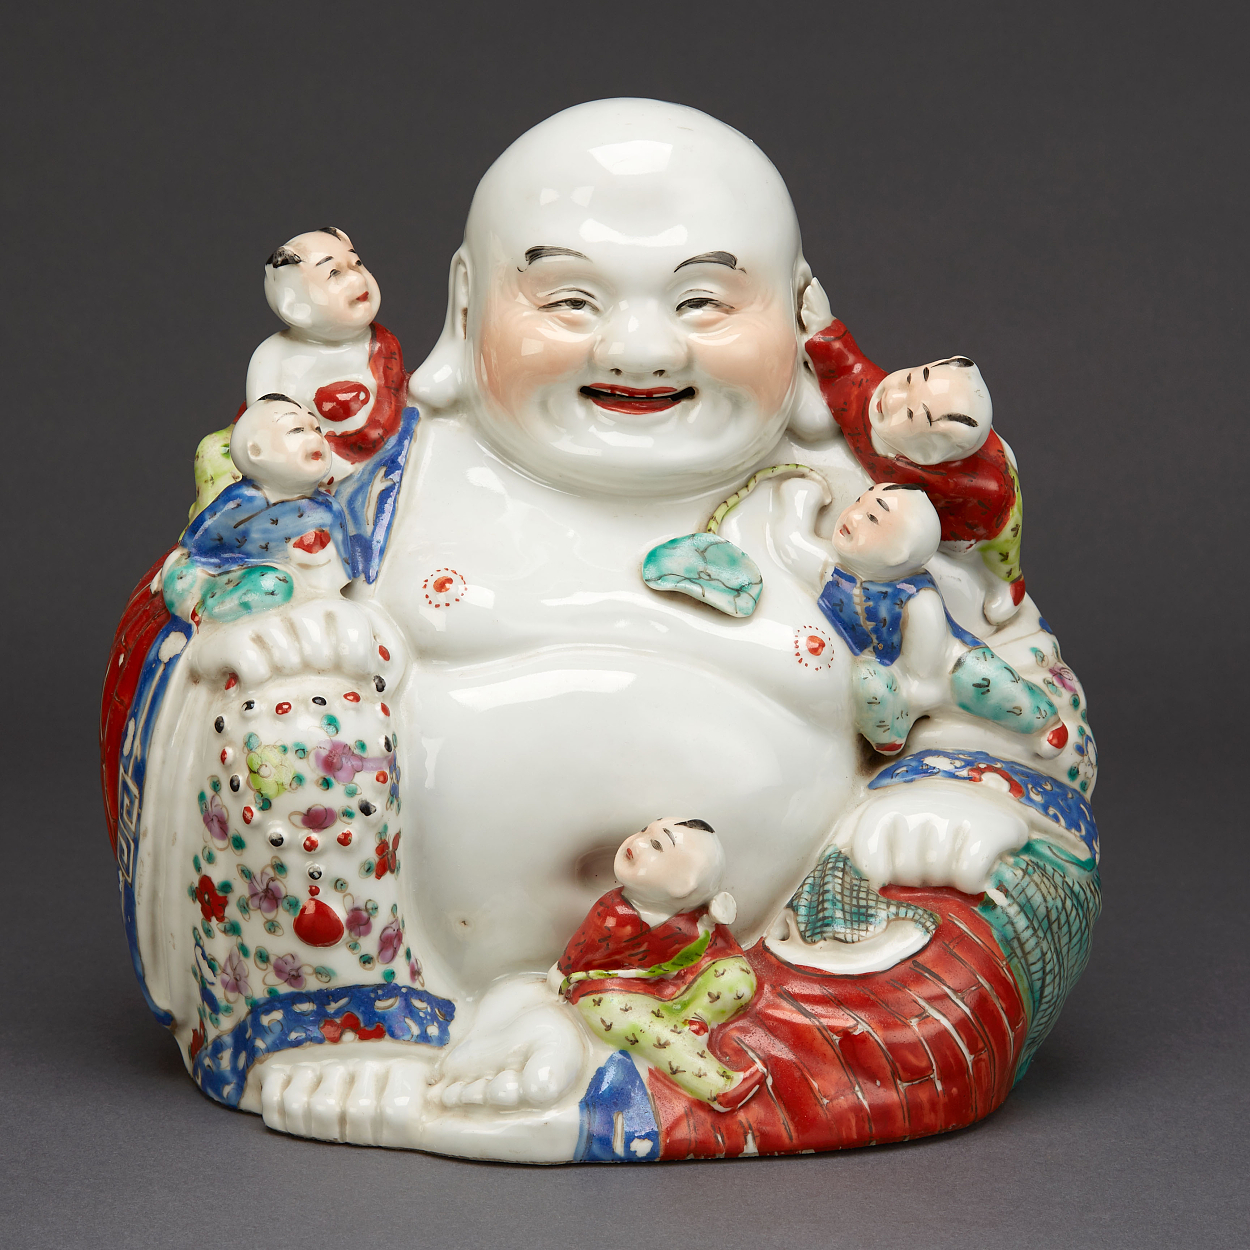 A 'Laughing Buddha' Figure with Children